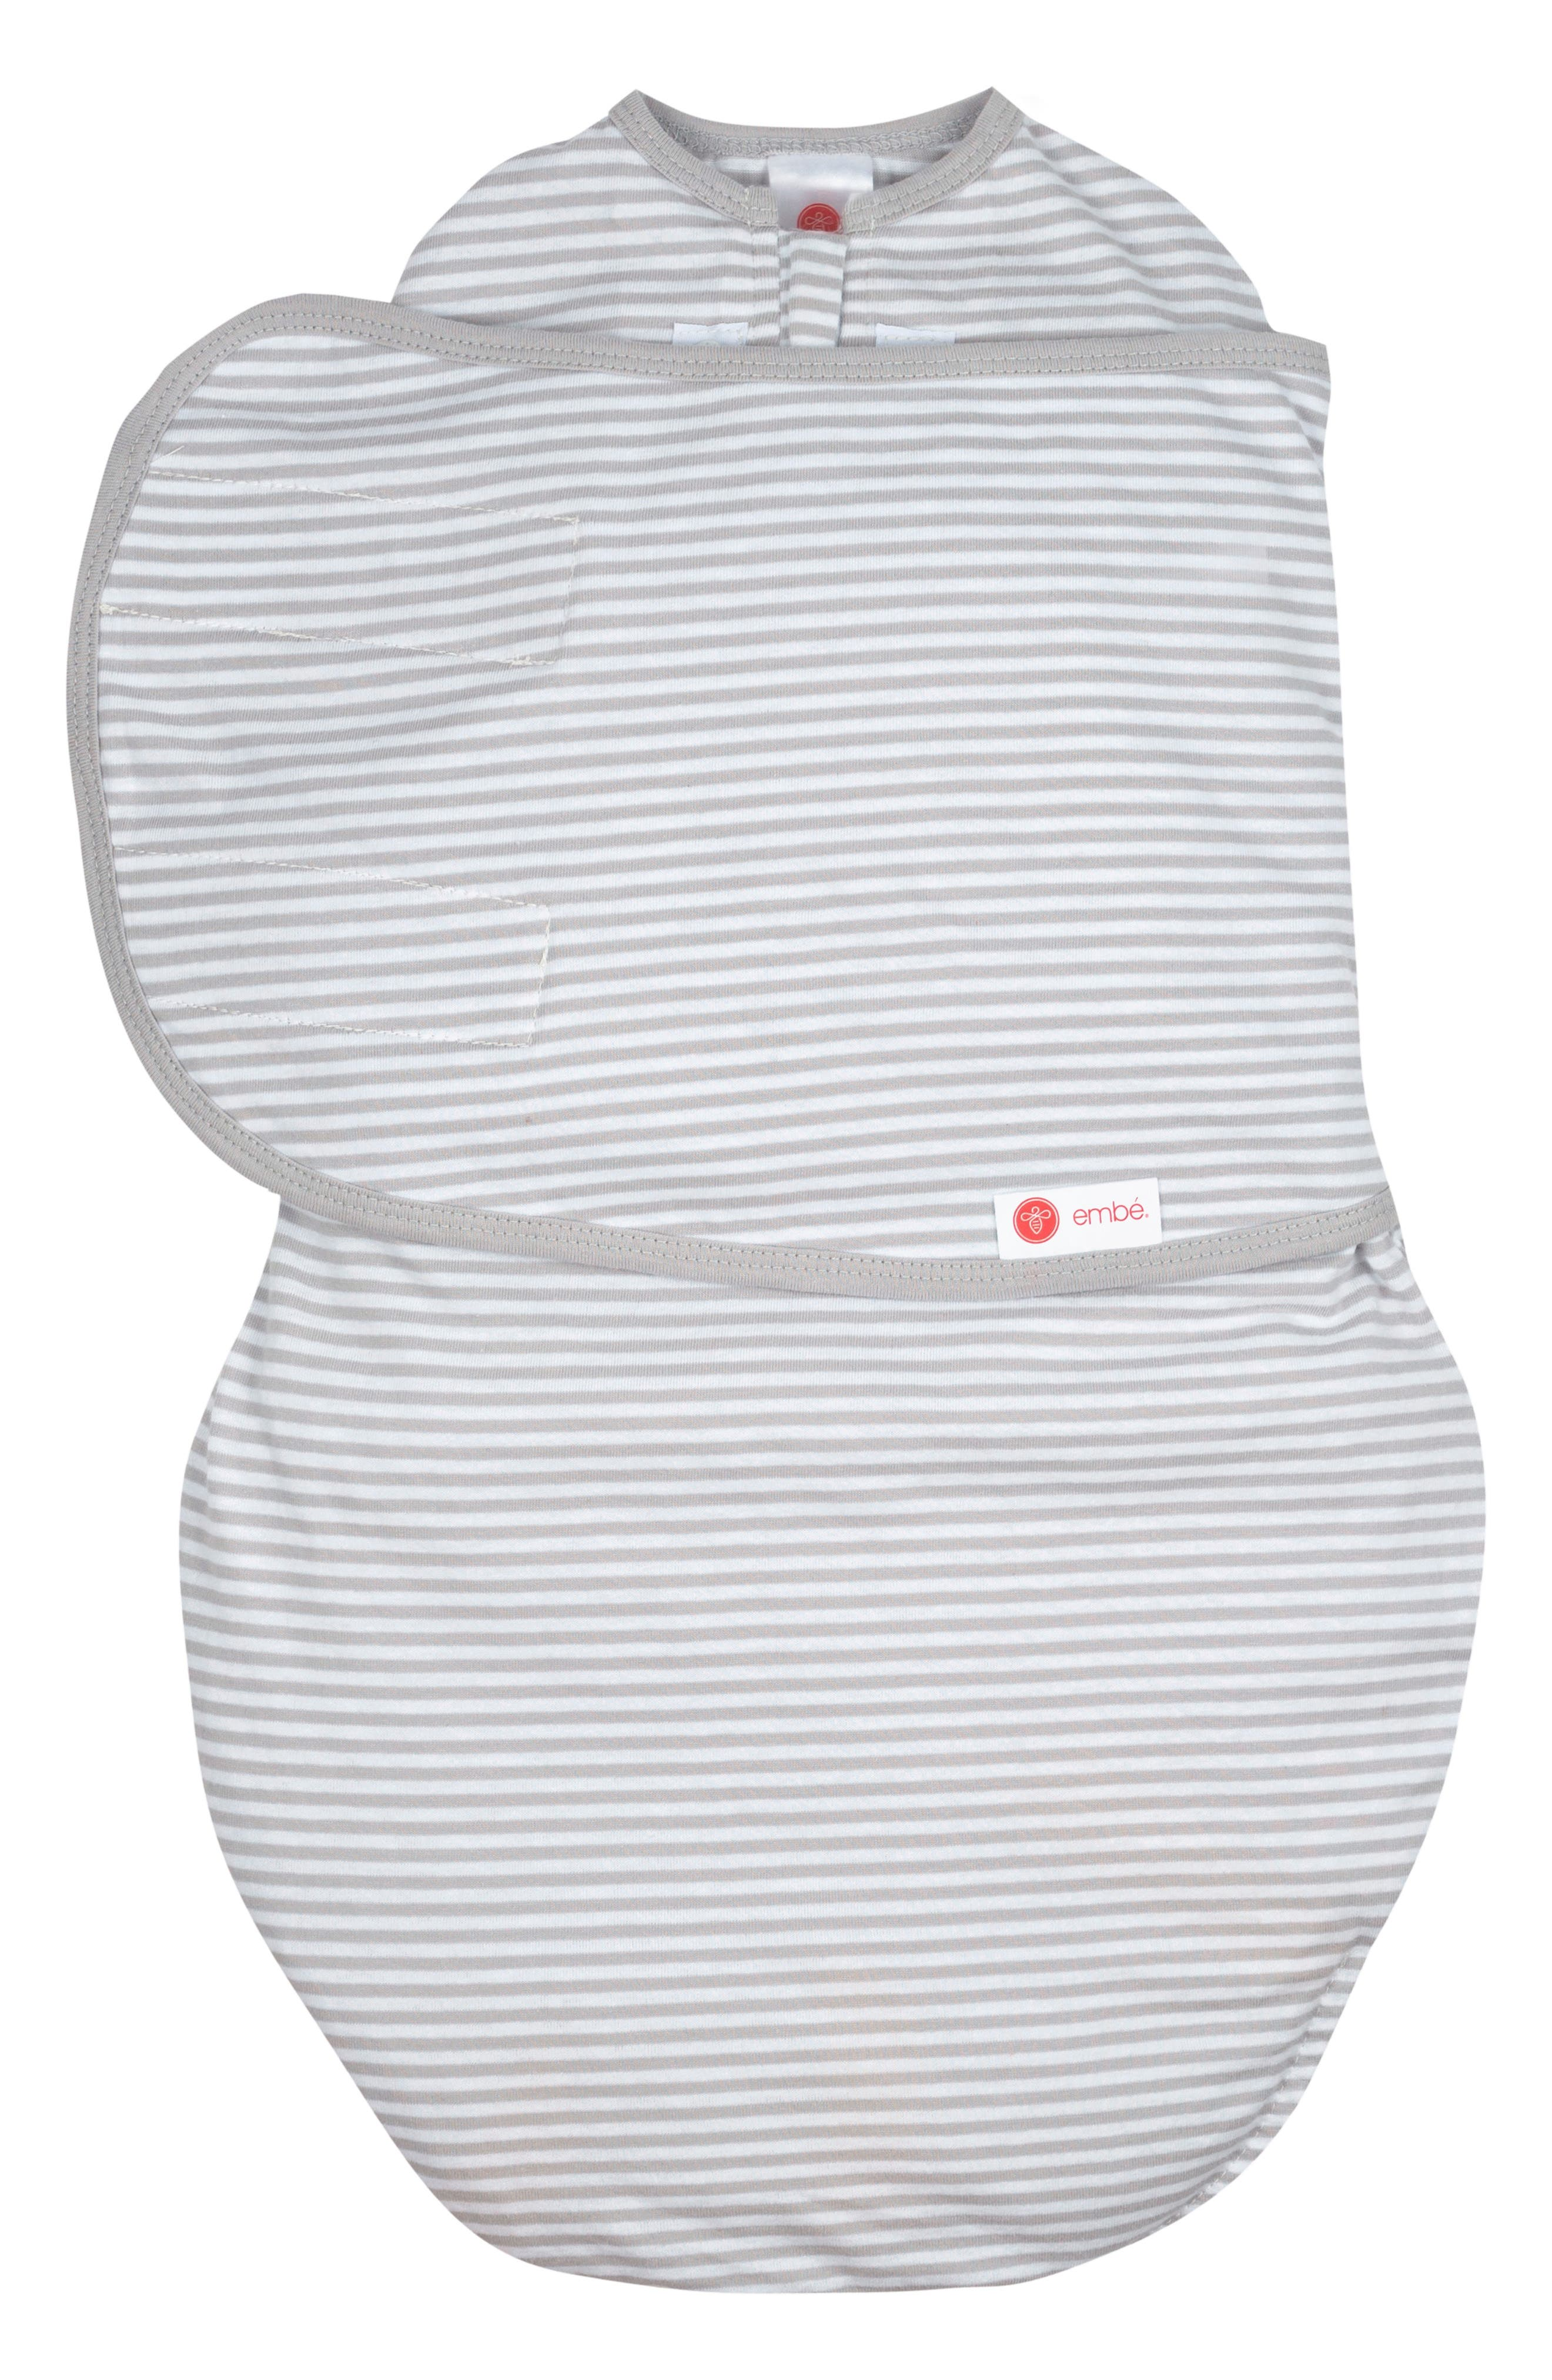 2-Way Swaddle,                         Main,                         color, 020